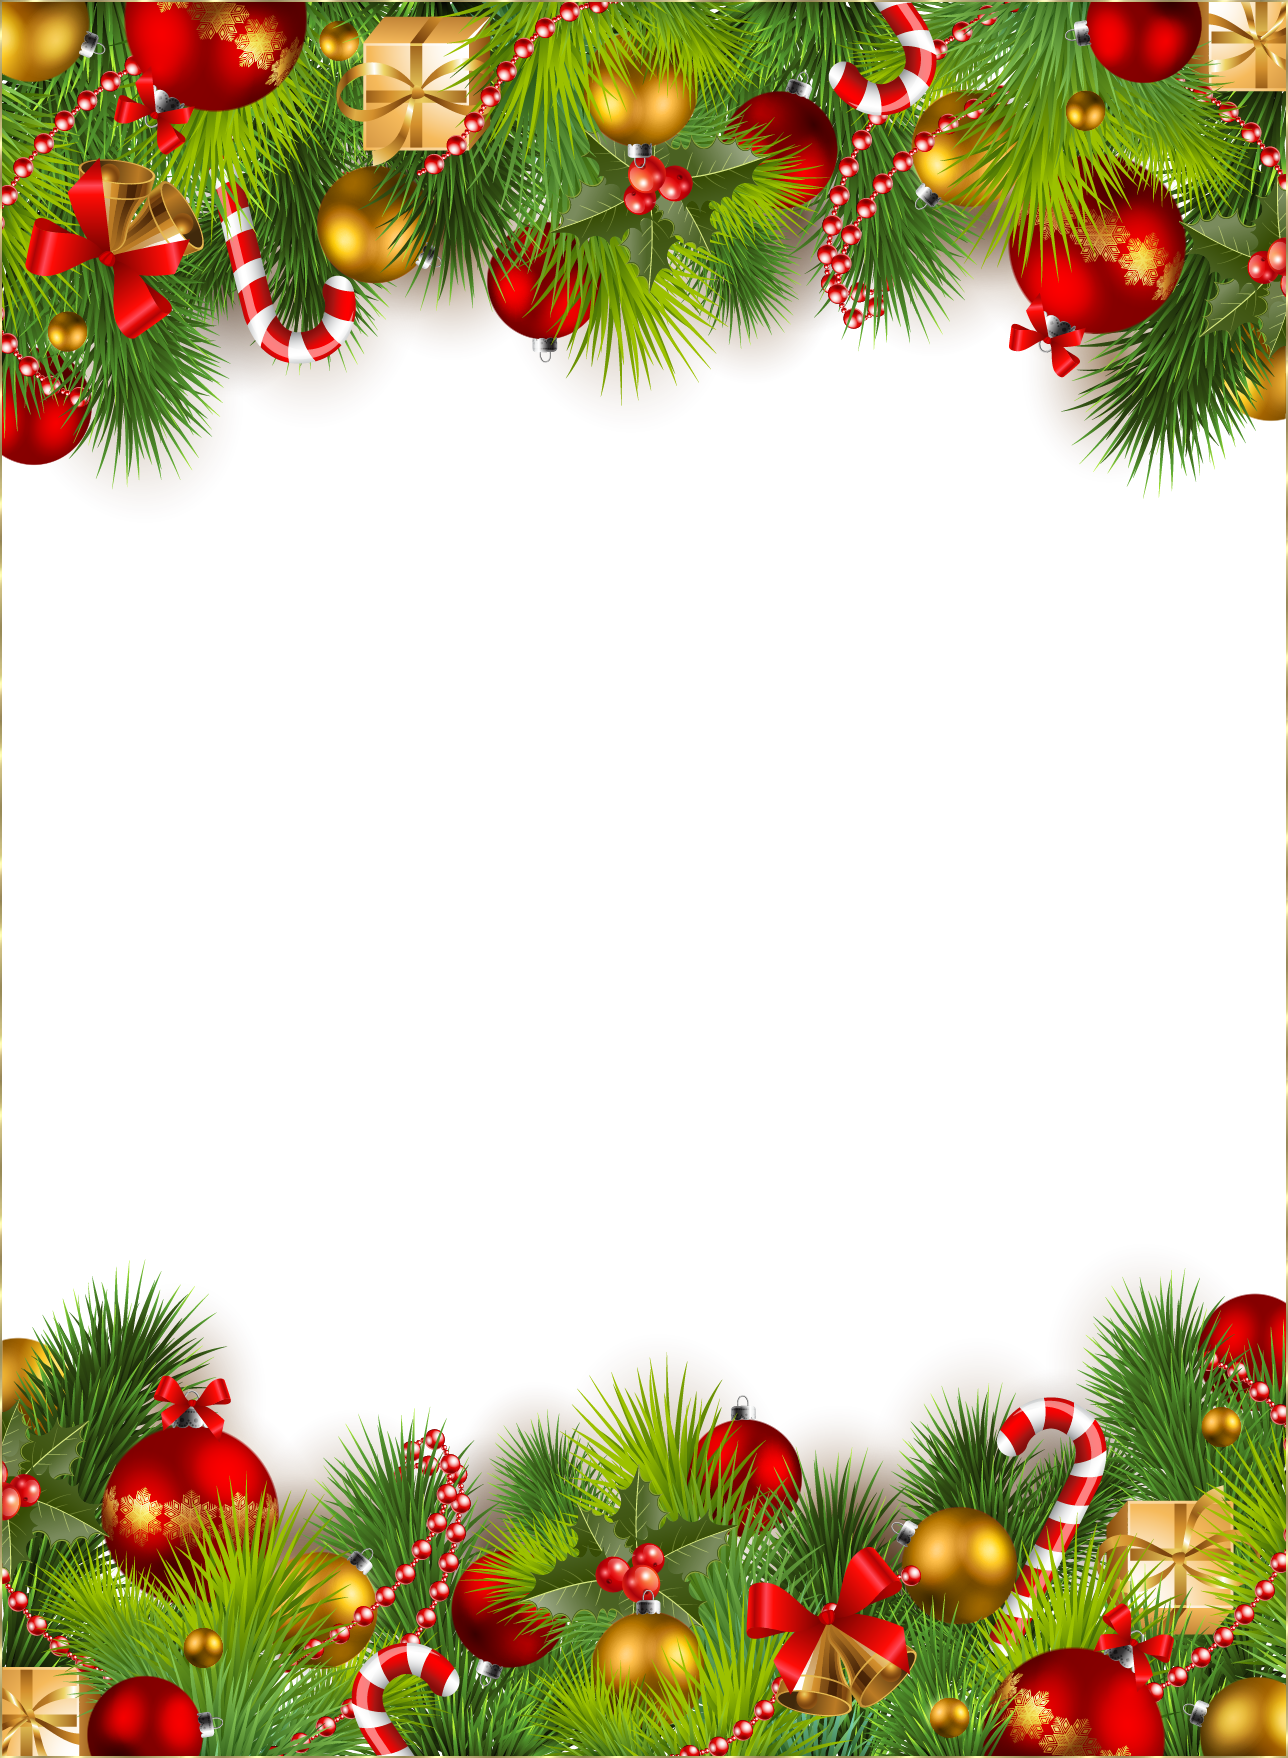 Clipart snowflake festive borders image freeuse download Zoom in (real dimensions: 1288 x 1758) | Rosario Hernandez ... image freeuse download